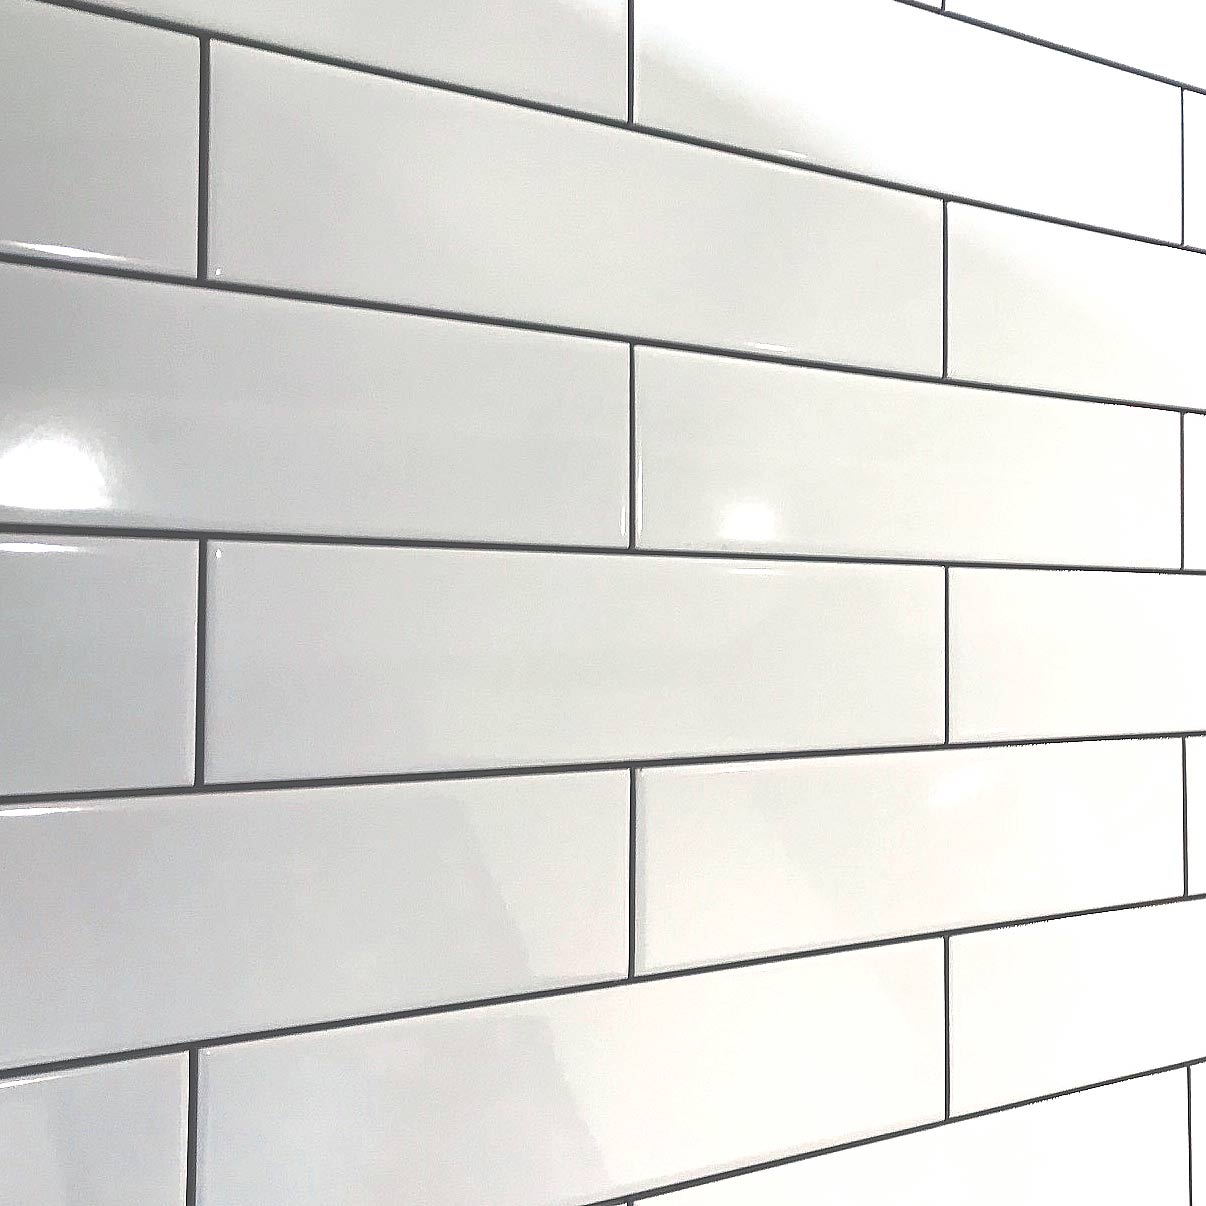 A Long Smooth Flat Brick White Gloss Ceramic Wall Tile By Demireks Tiles The Metro Smooth Flat Range Is A Mo White Brick Tiles Brick Effect Tiles Tile Bathroom